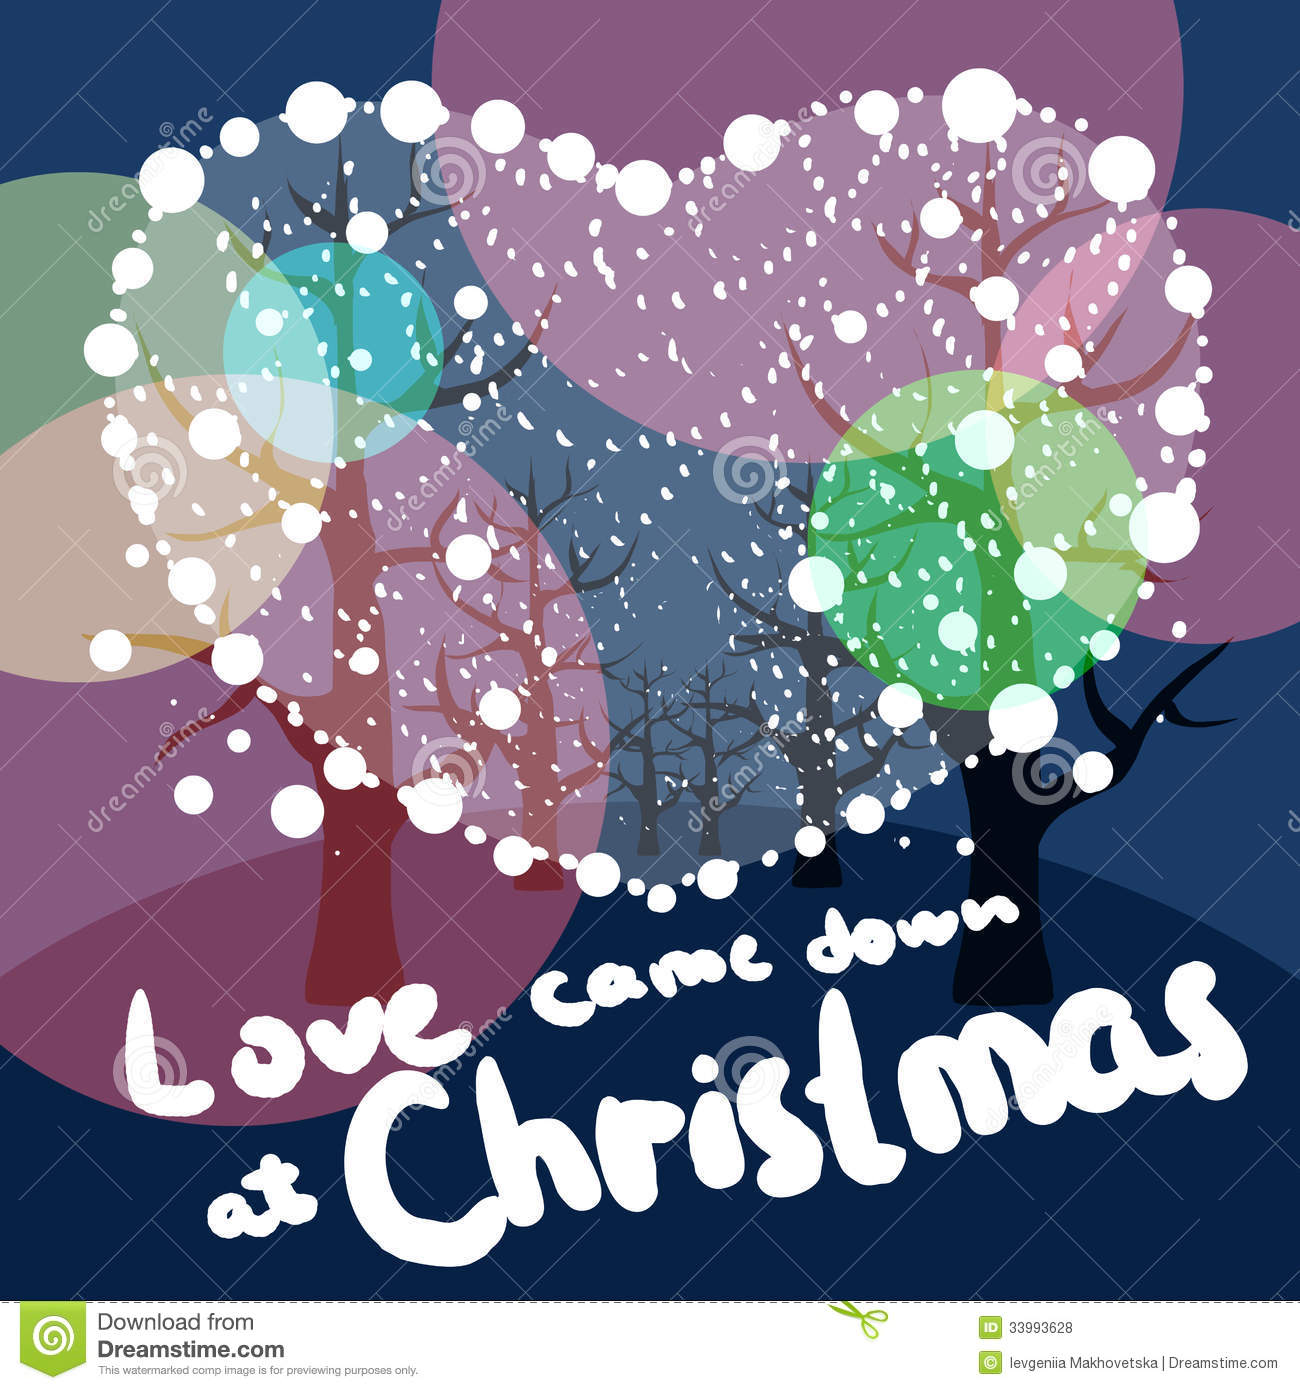 Merry Christmas love stock illustration. Illustration of decoration ...